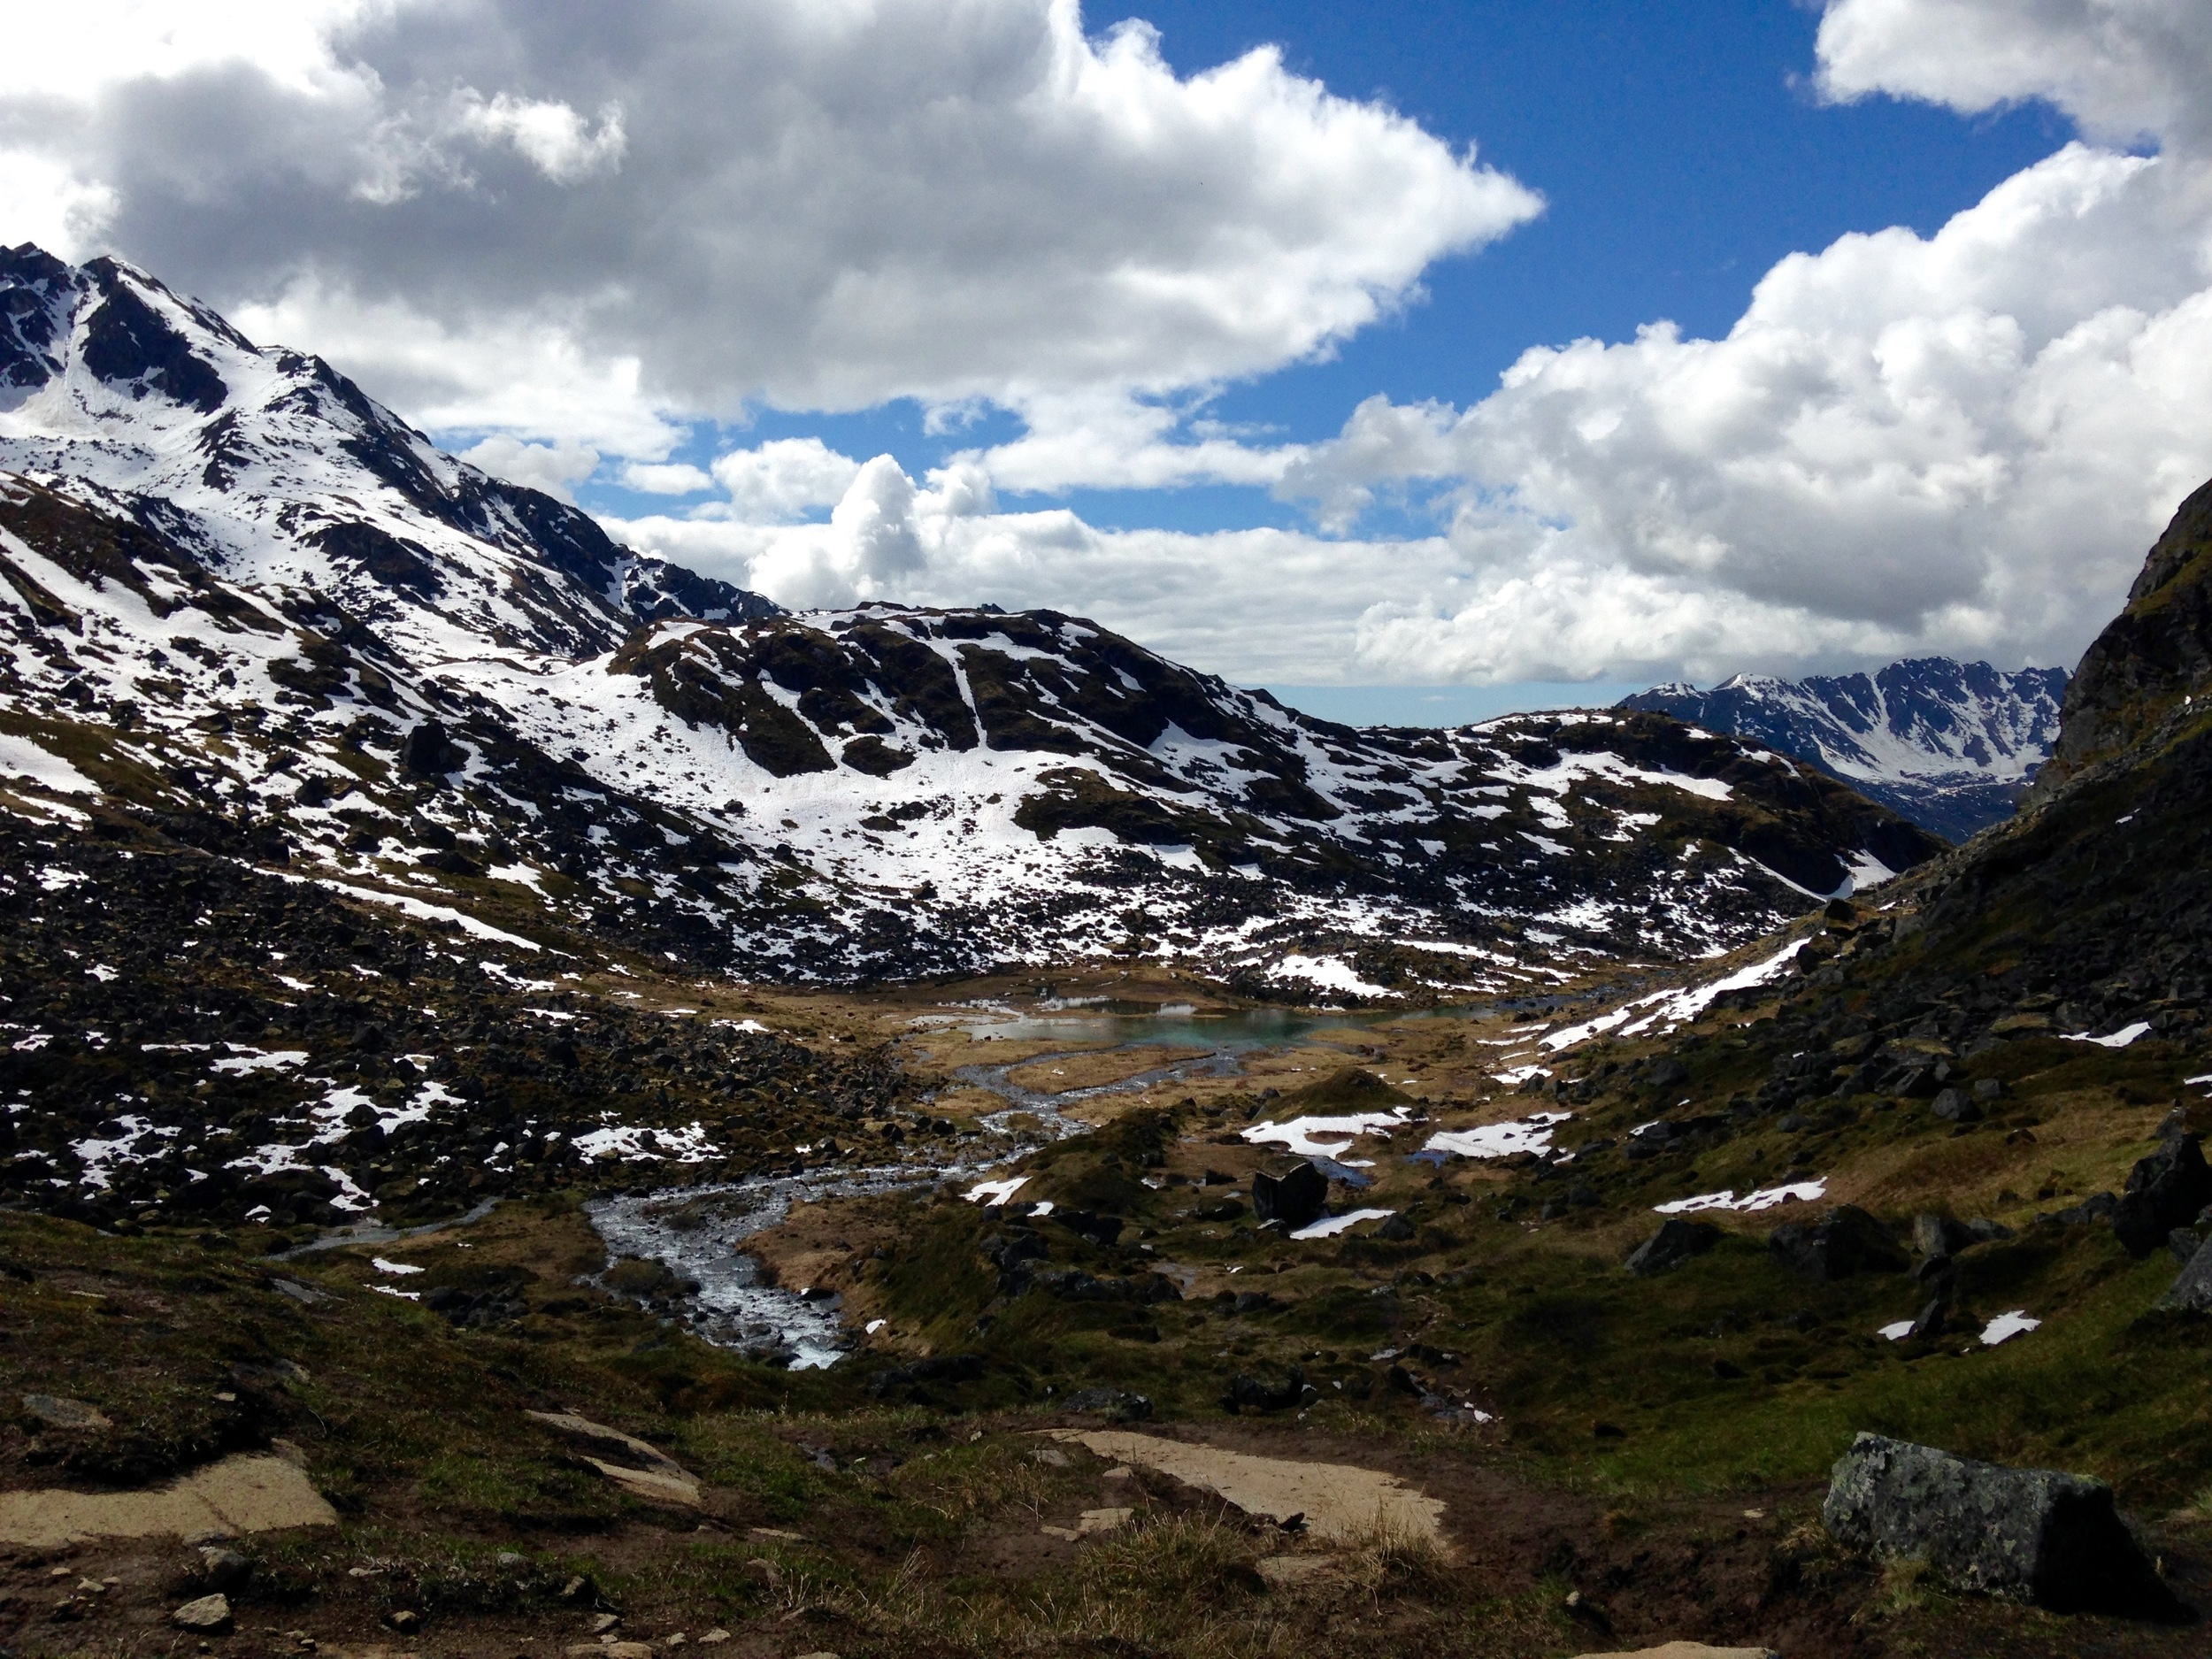 View from Reed lake near hatcher Pass. Looks like the eastern Sierra huh?